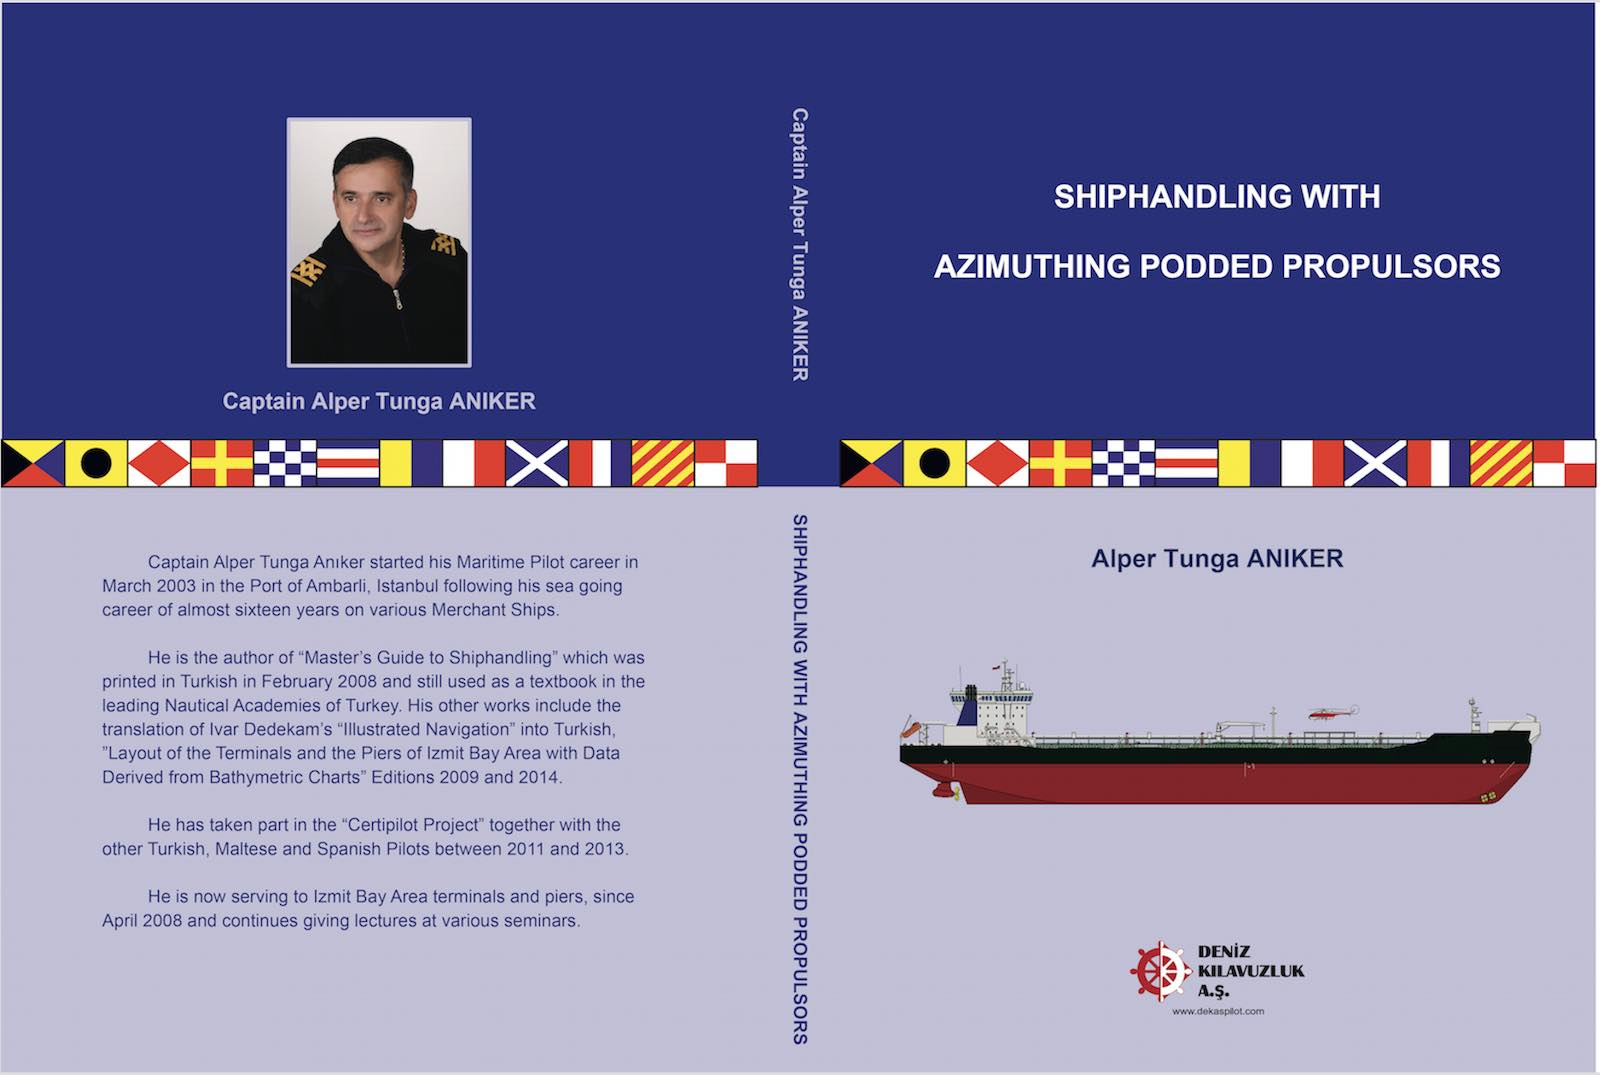 """SHIPHANDLING WITH AZIMUTHING PODDED PROPULSORS"""